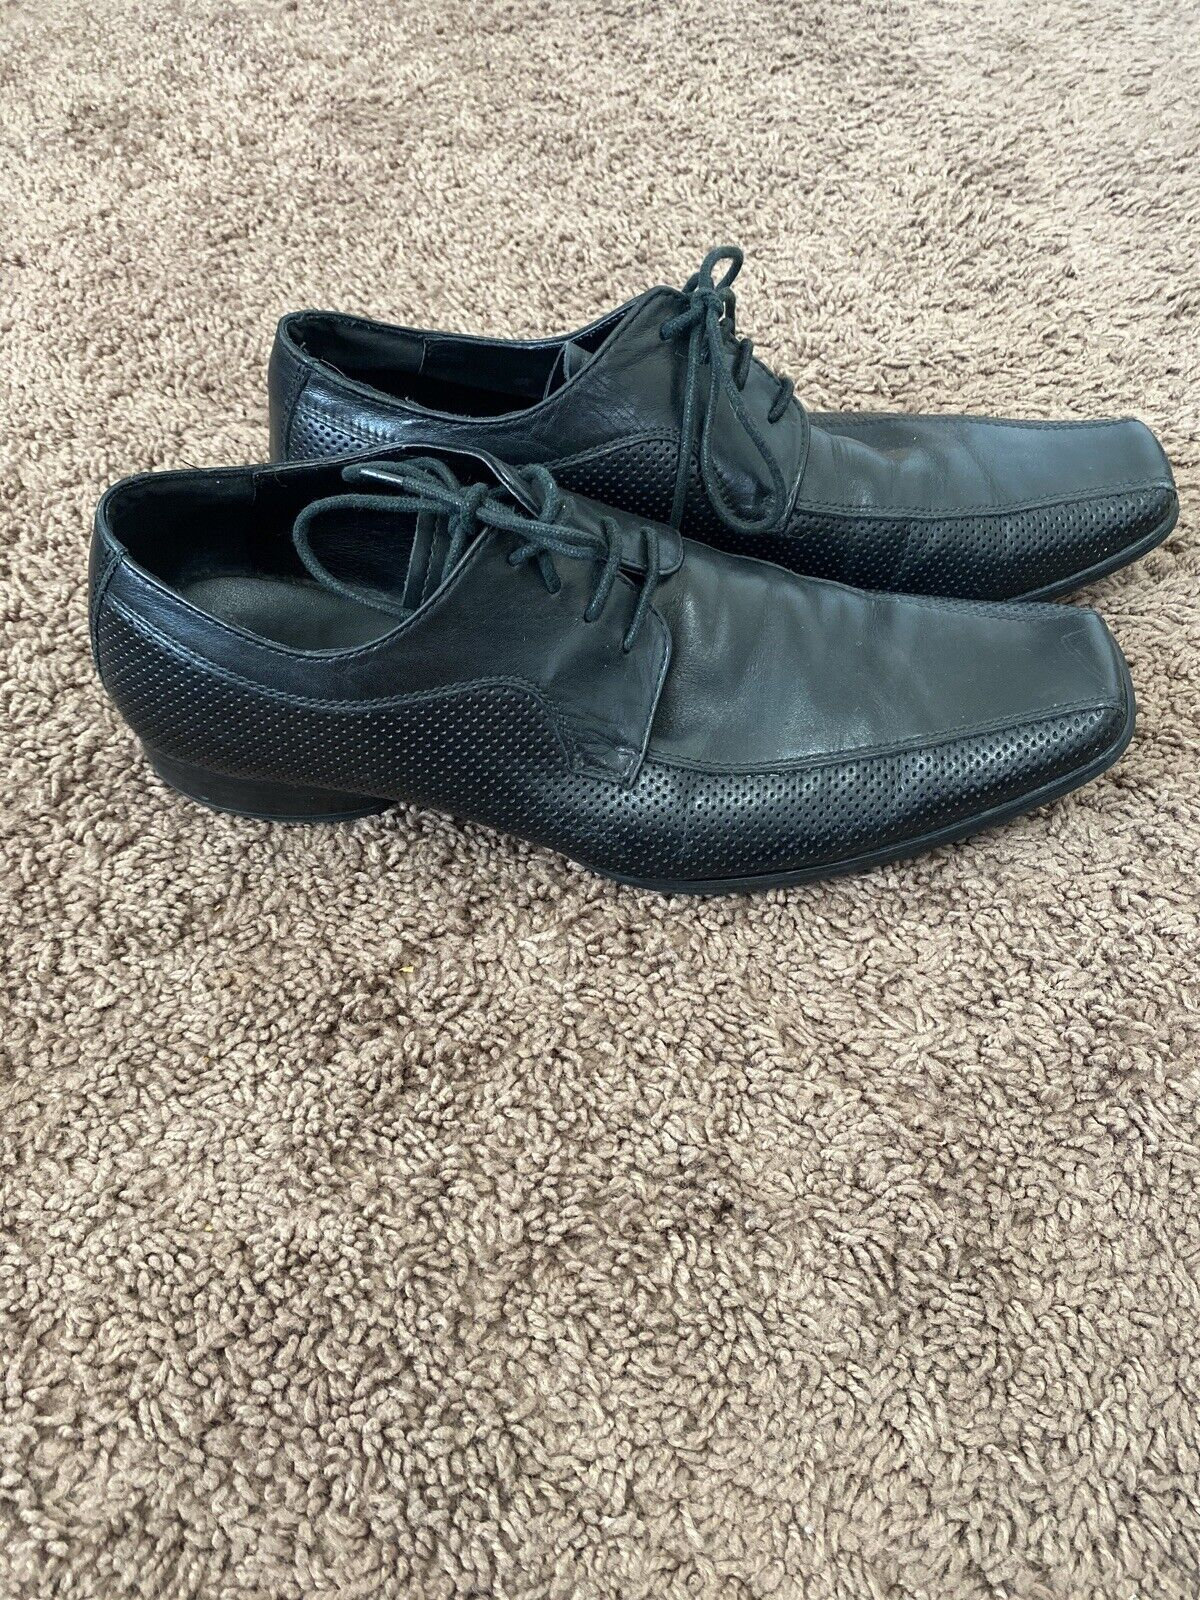 Kenneth Cole Reaction Black Oxford Shoes Dress Leather Career Move 10